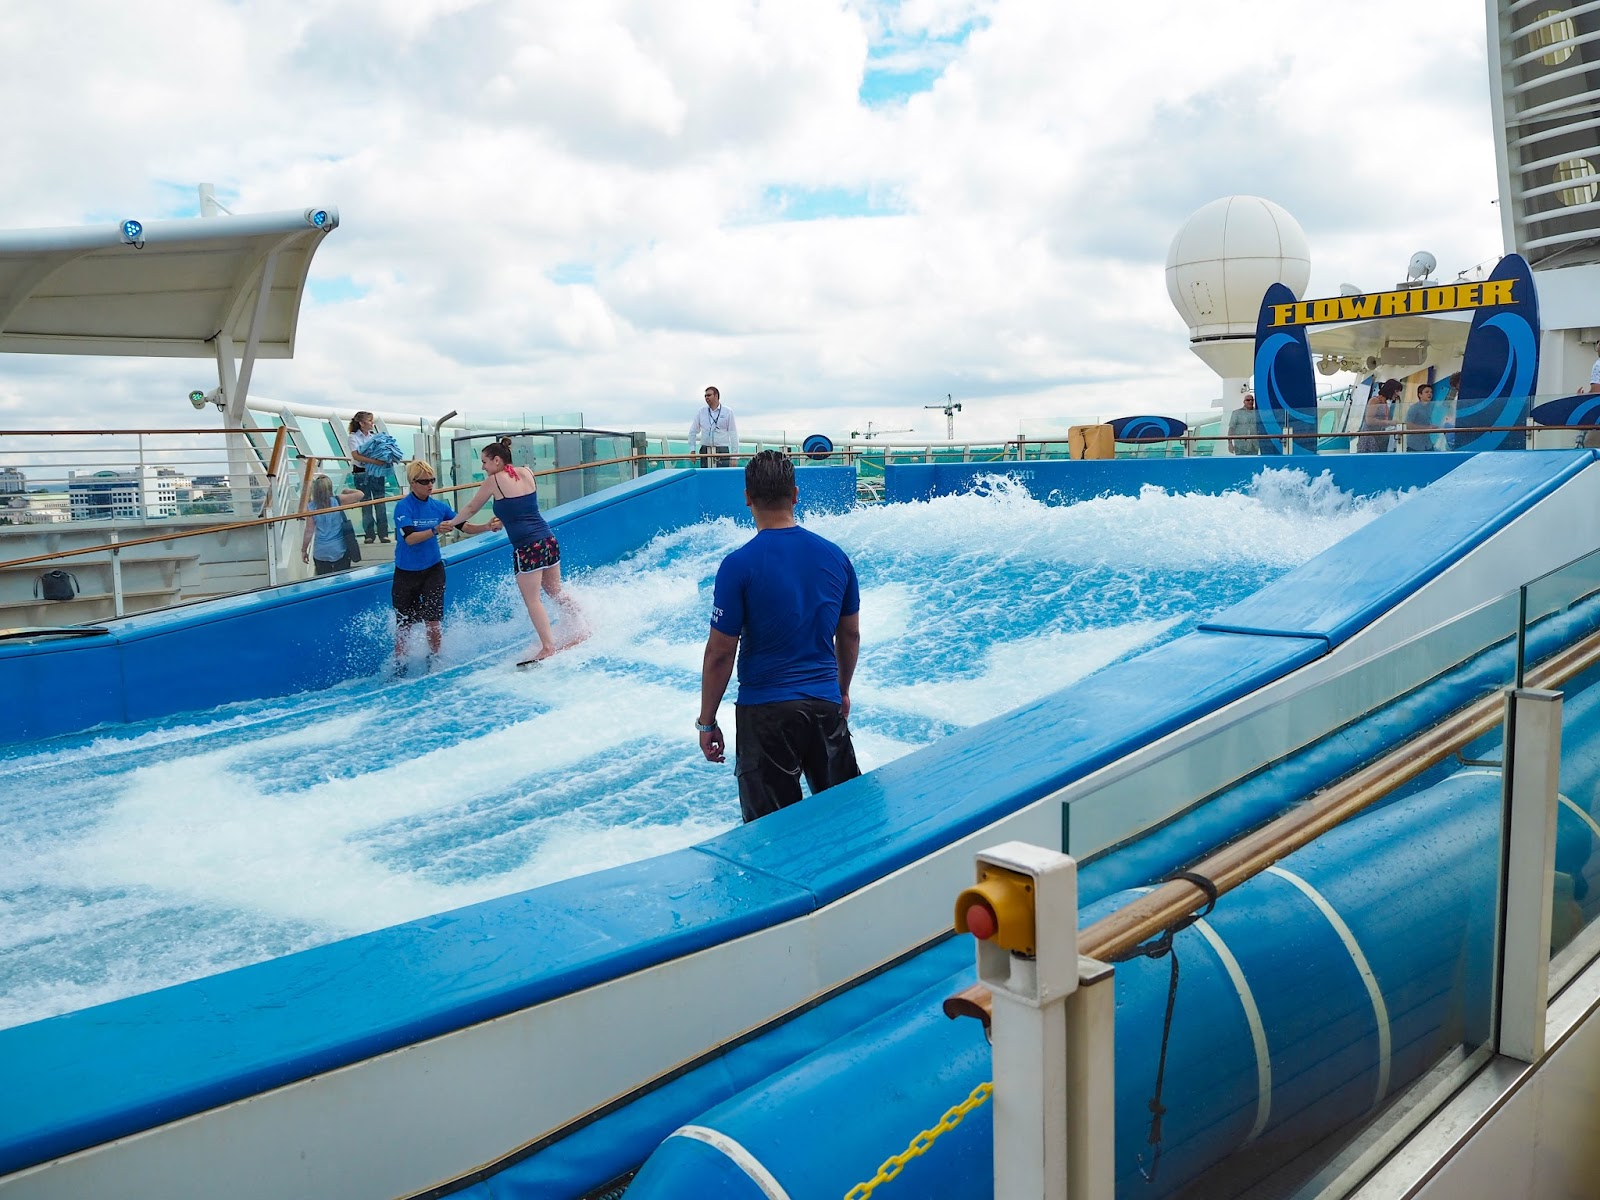 Surfing machine on Royal Caribbean's Navigator of the Seas Cruise Ship